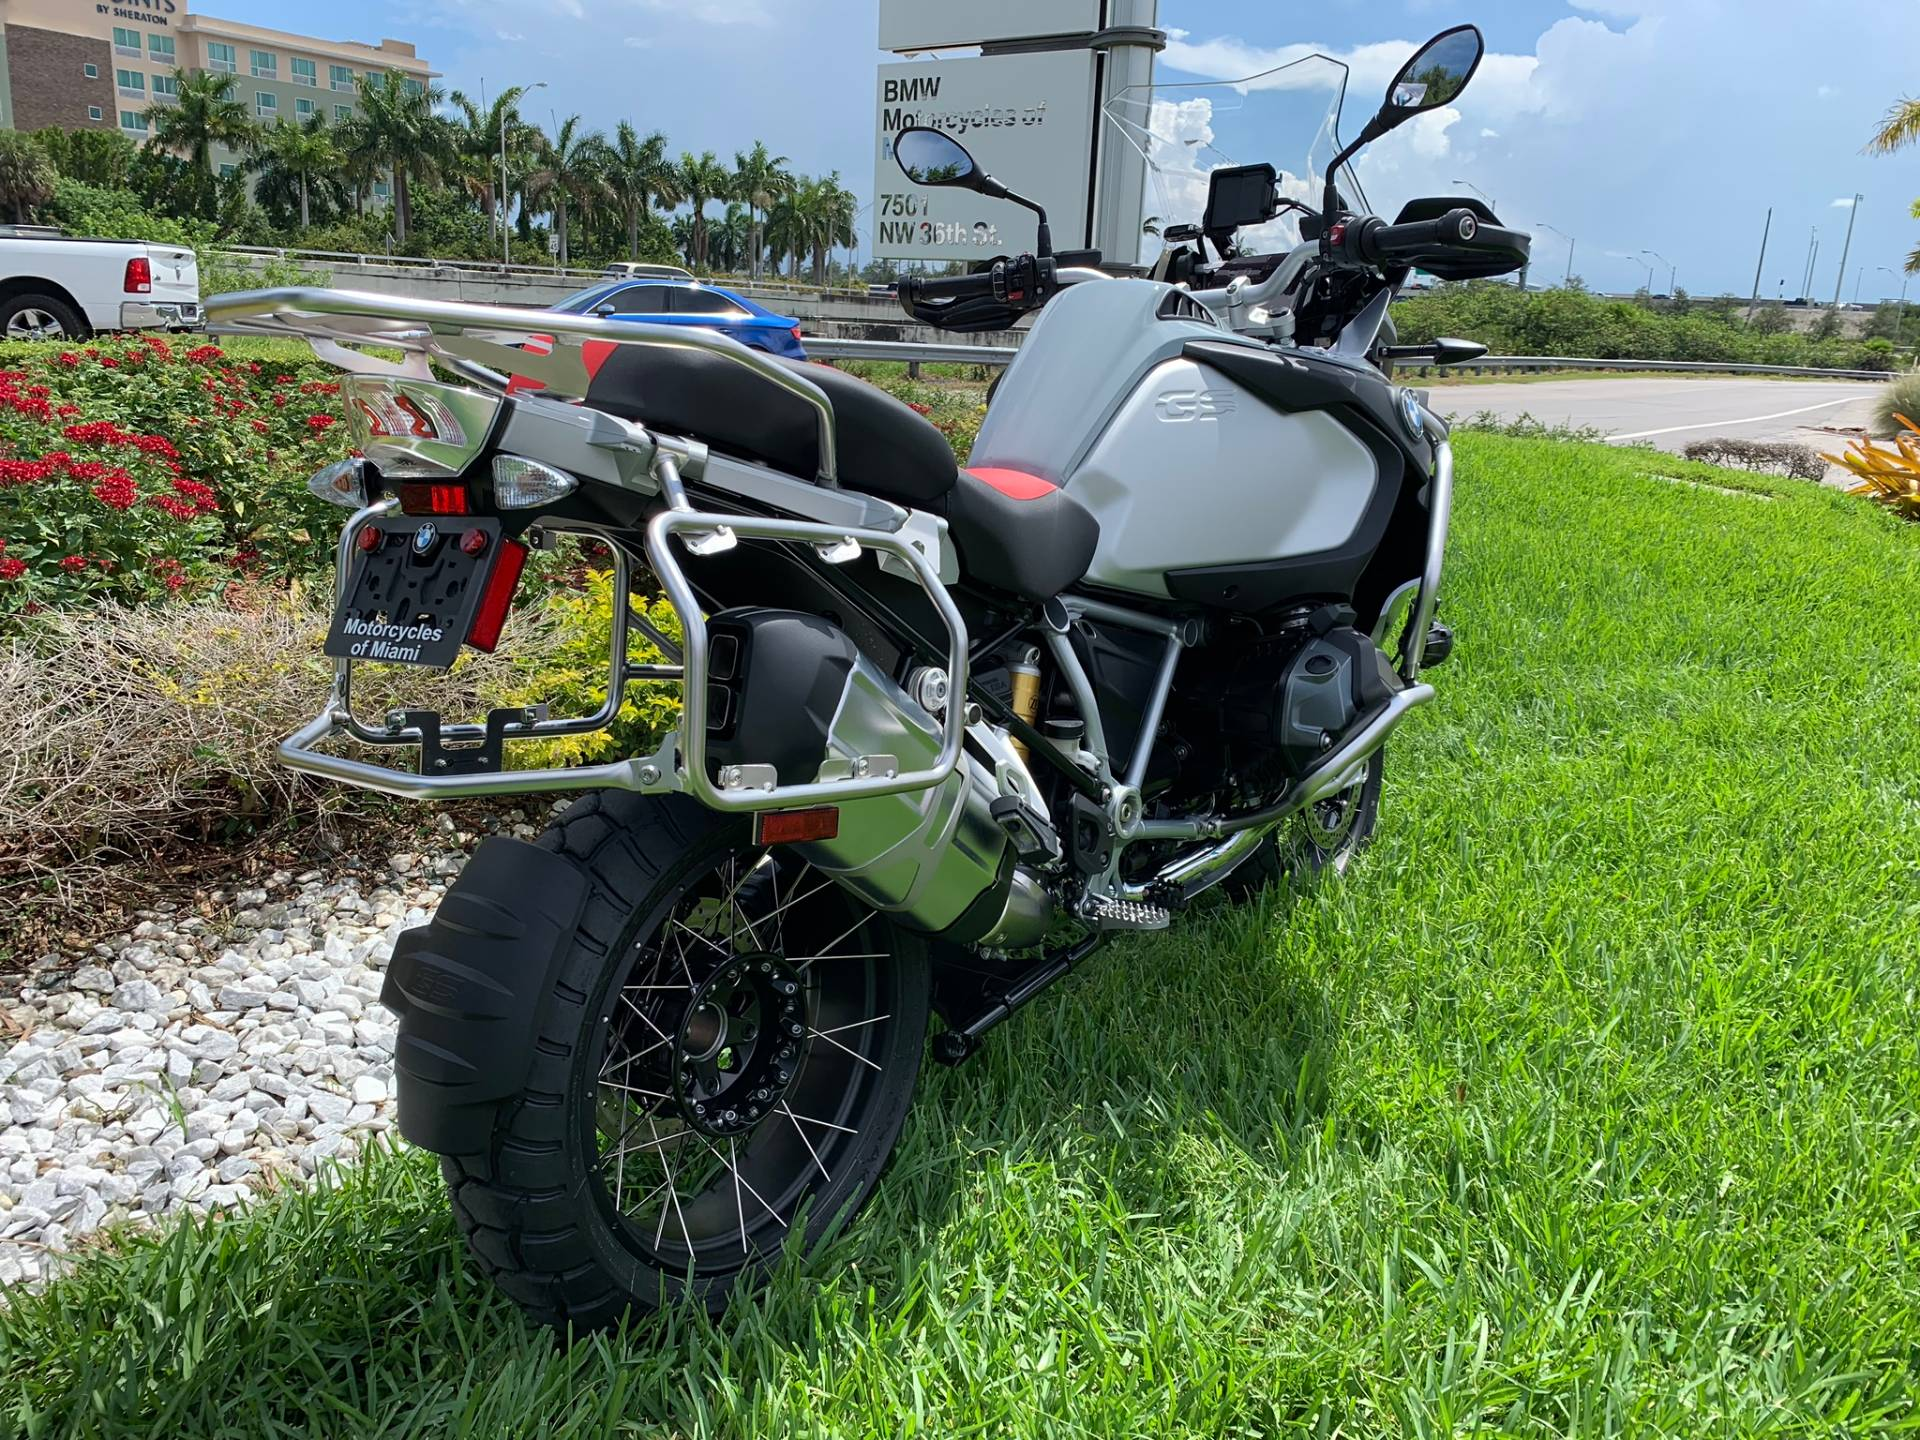 New 2019 BMW R 1250 GSA for sale, New BMW for sale R 1250GSA, New BMW Motorcycle R1250GSA for sale, new BMW 1250GS Adventure, R1250GS Adventure, Adventure. BMW Motorcycles of Miami, Motorcycles of Miami, Motorcycles Miami, New Motorcycles, Used Motorcycles, pre-owned. #BMWMotorcyclesOfMiami #Motorcy - Photo 22